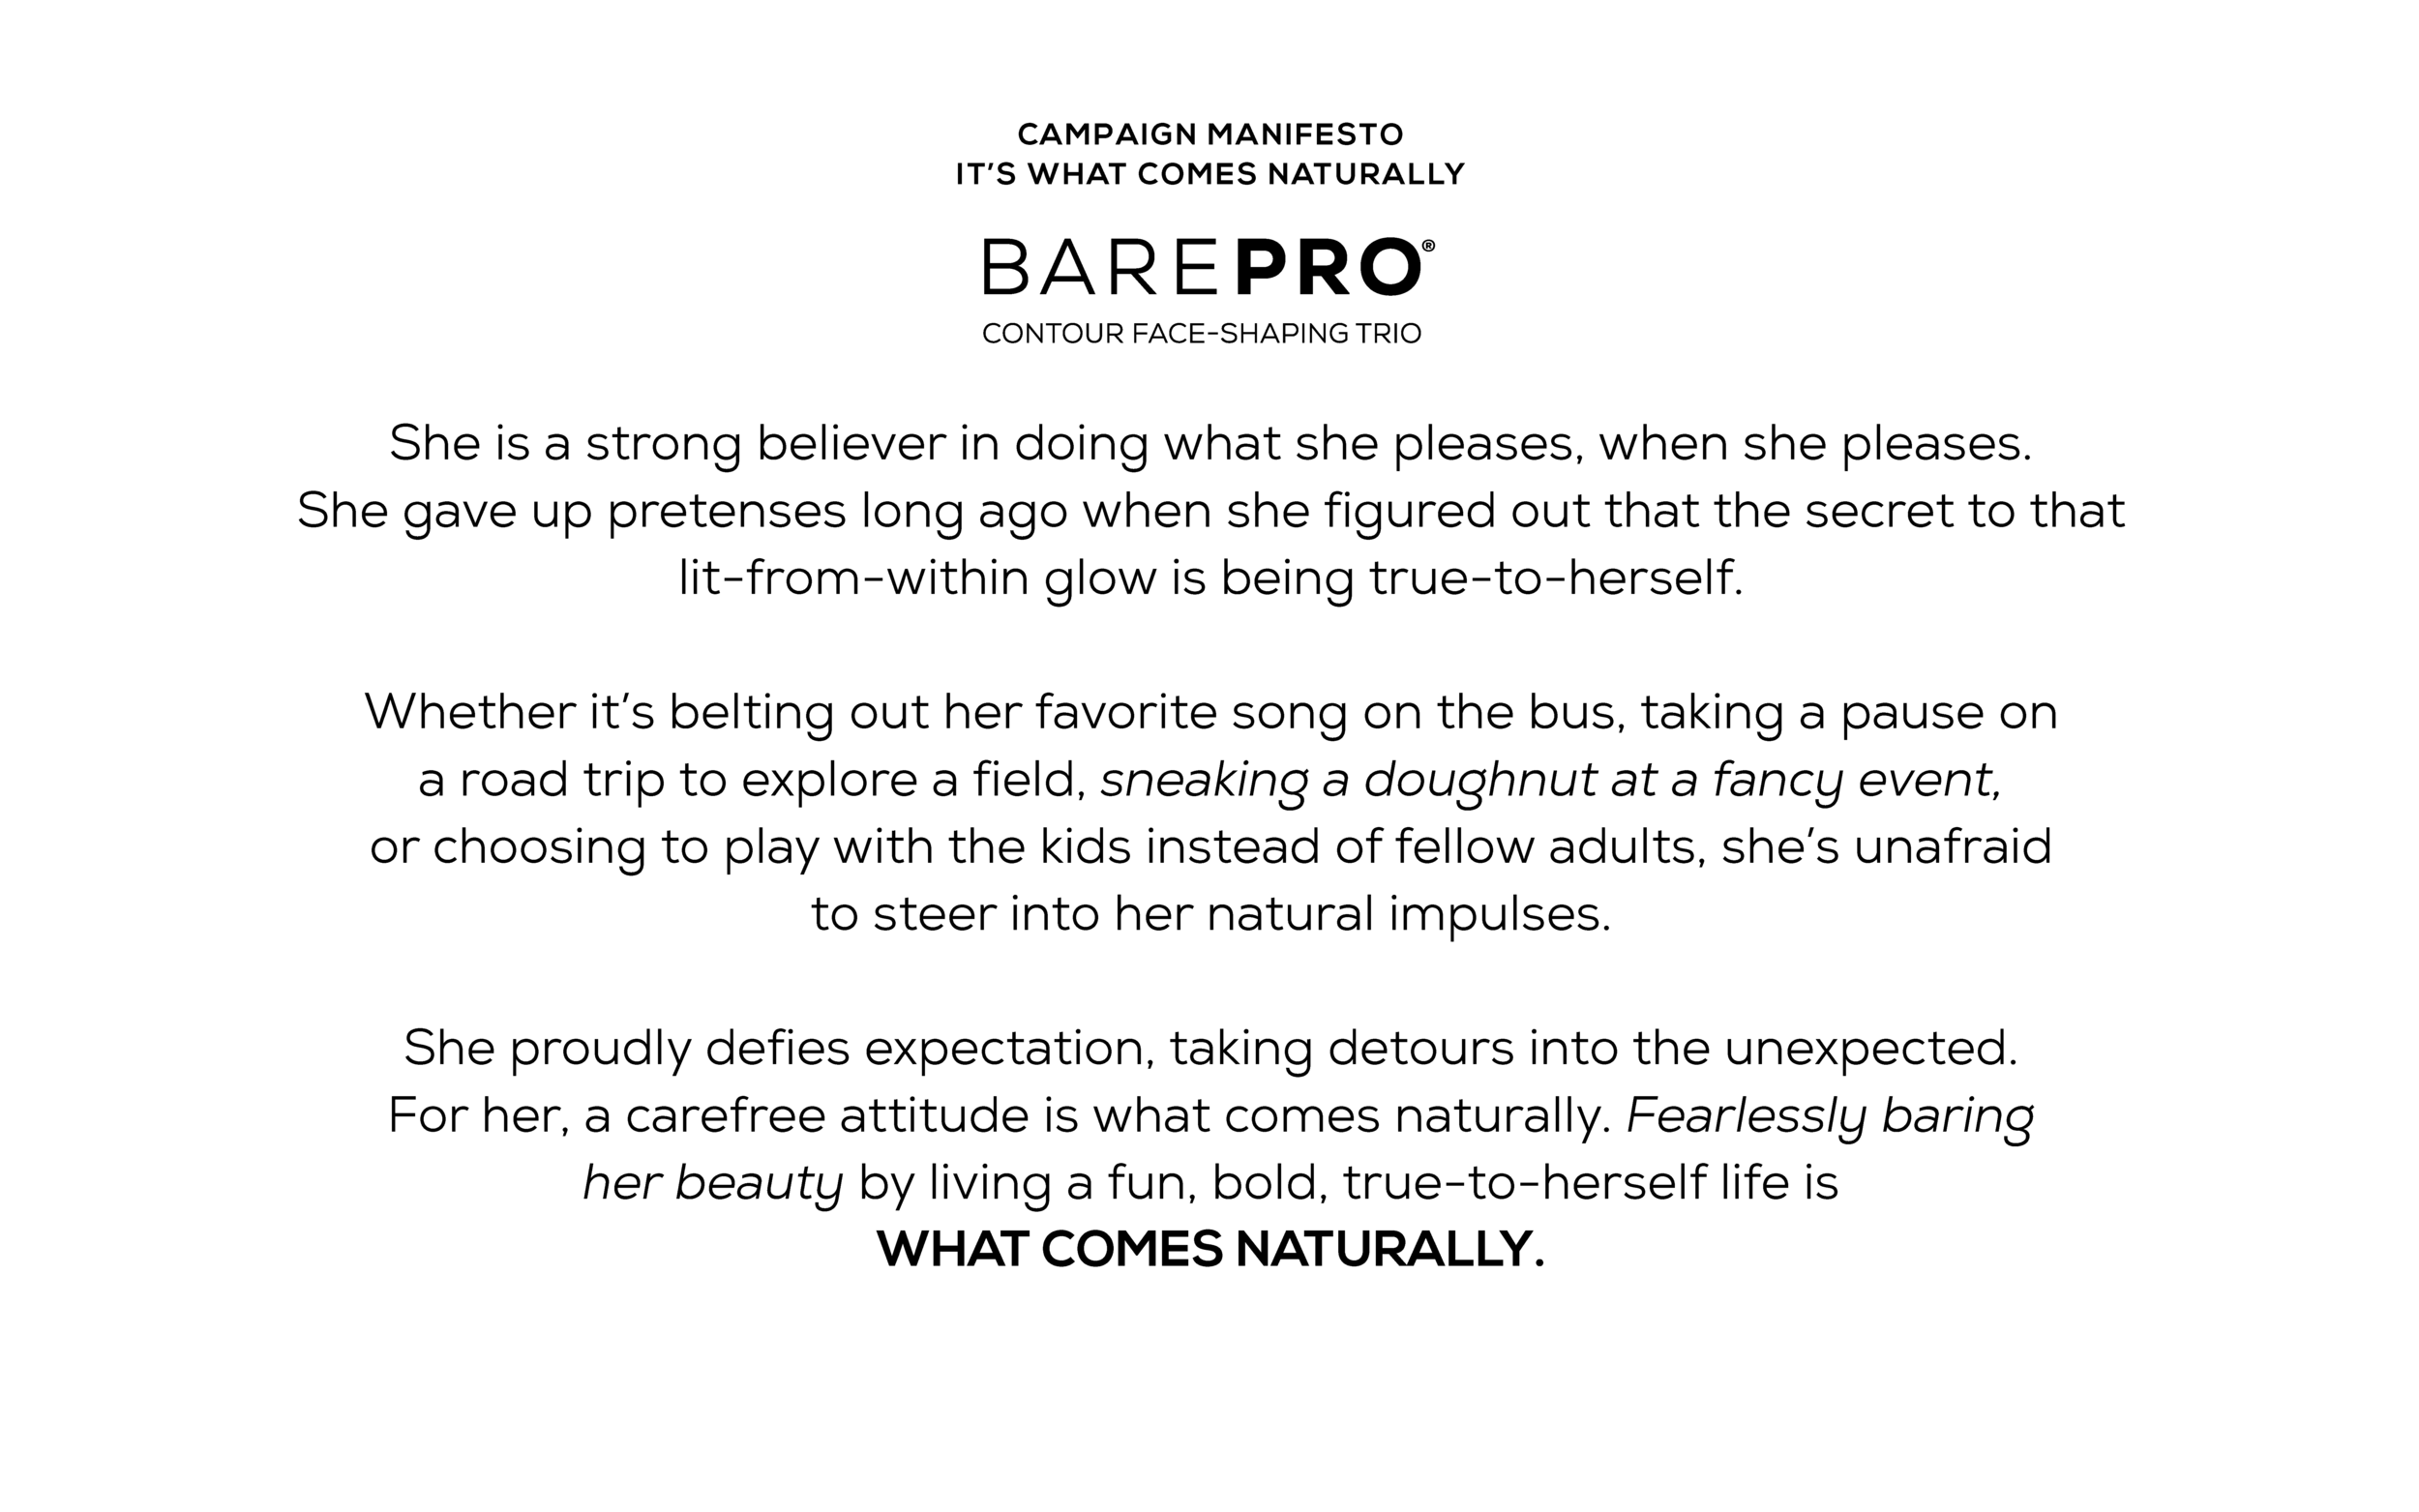 barePro_Contour_Toolkit_042117_Page_02.png